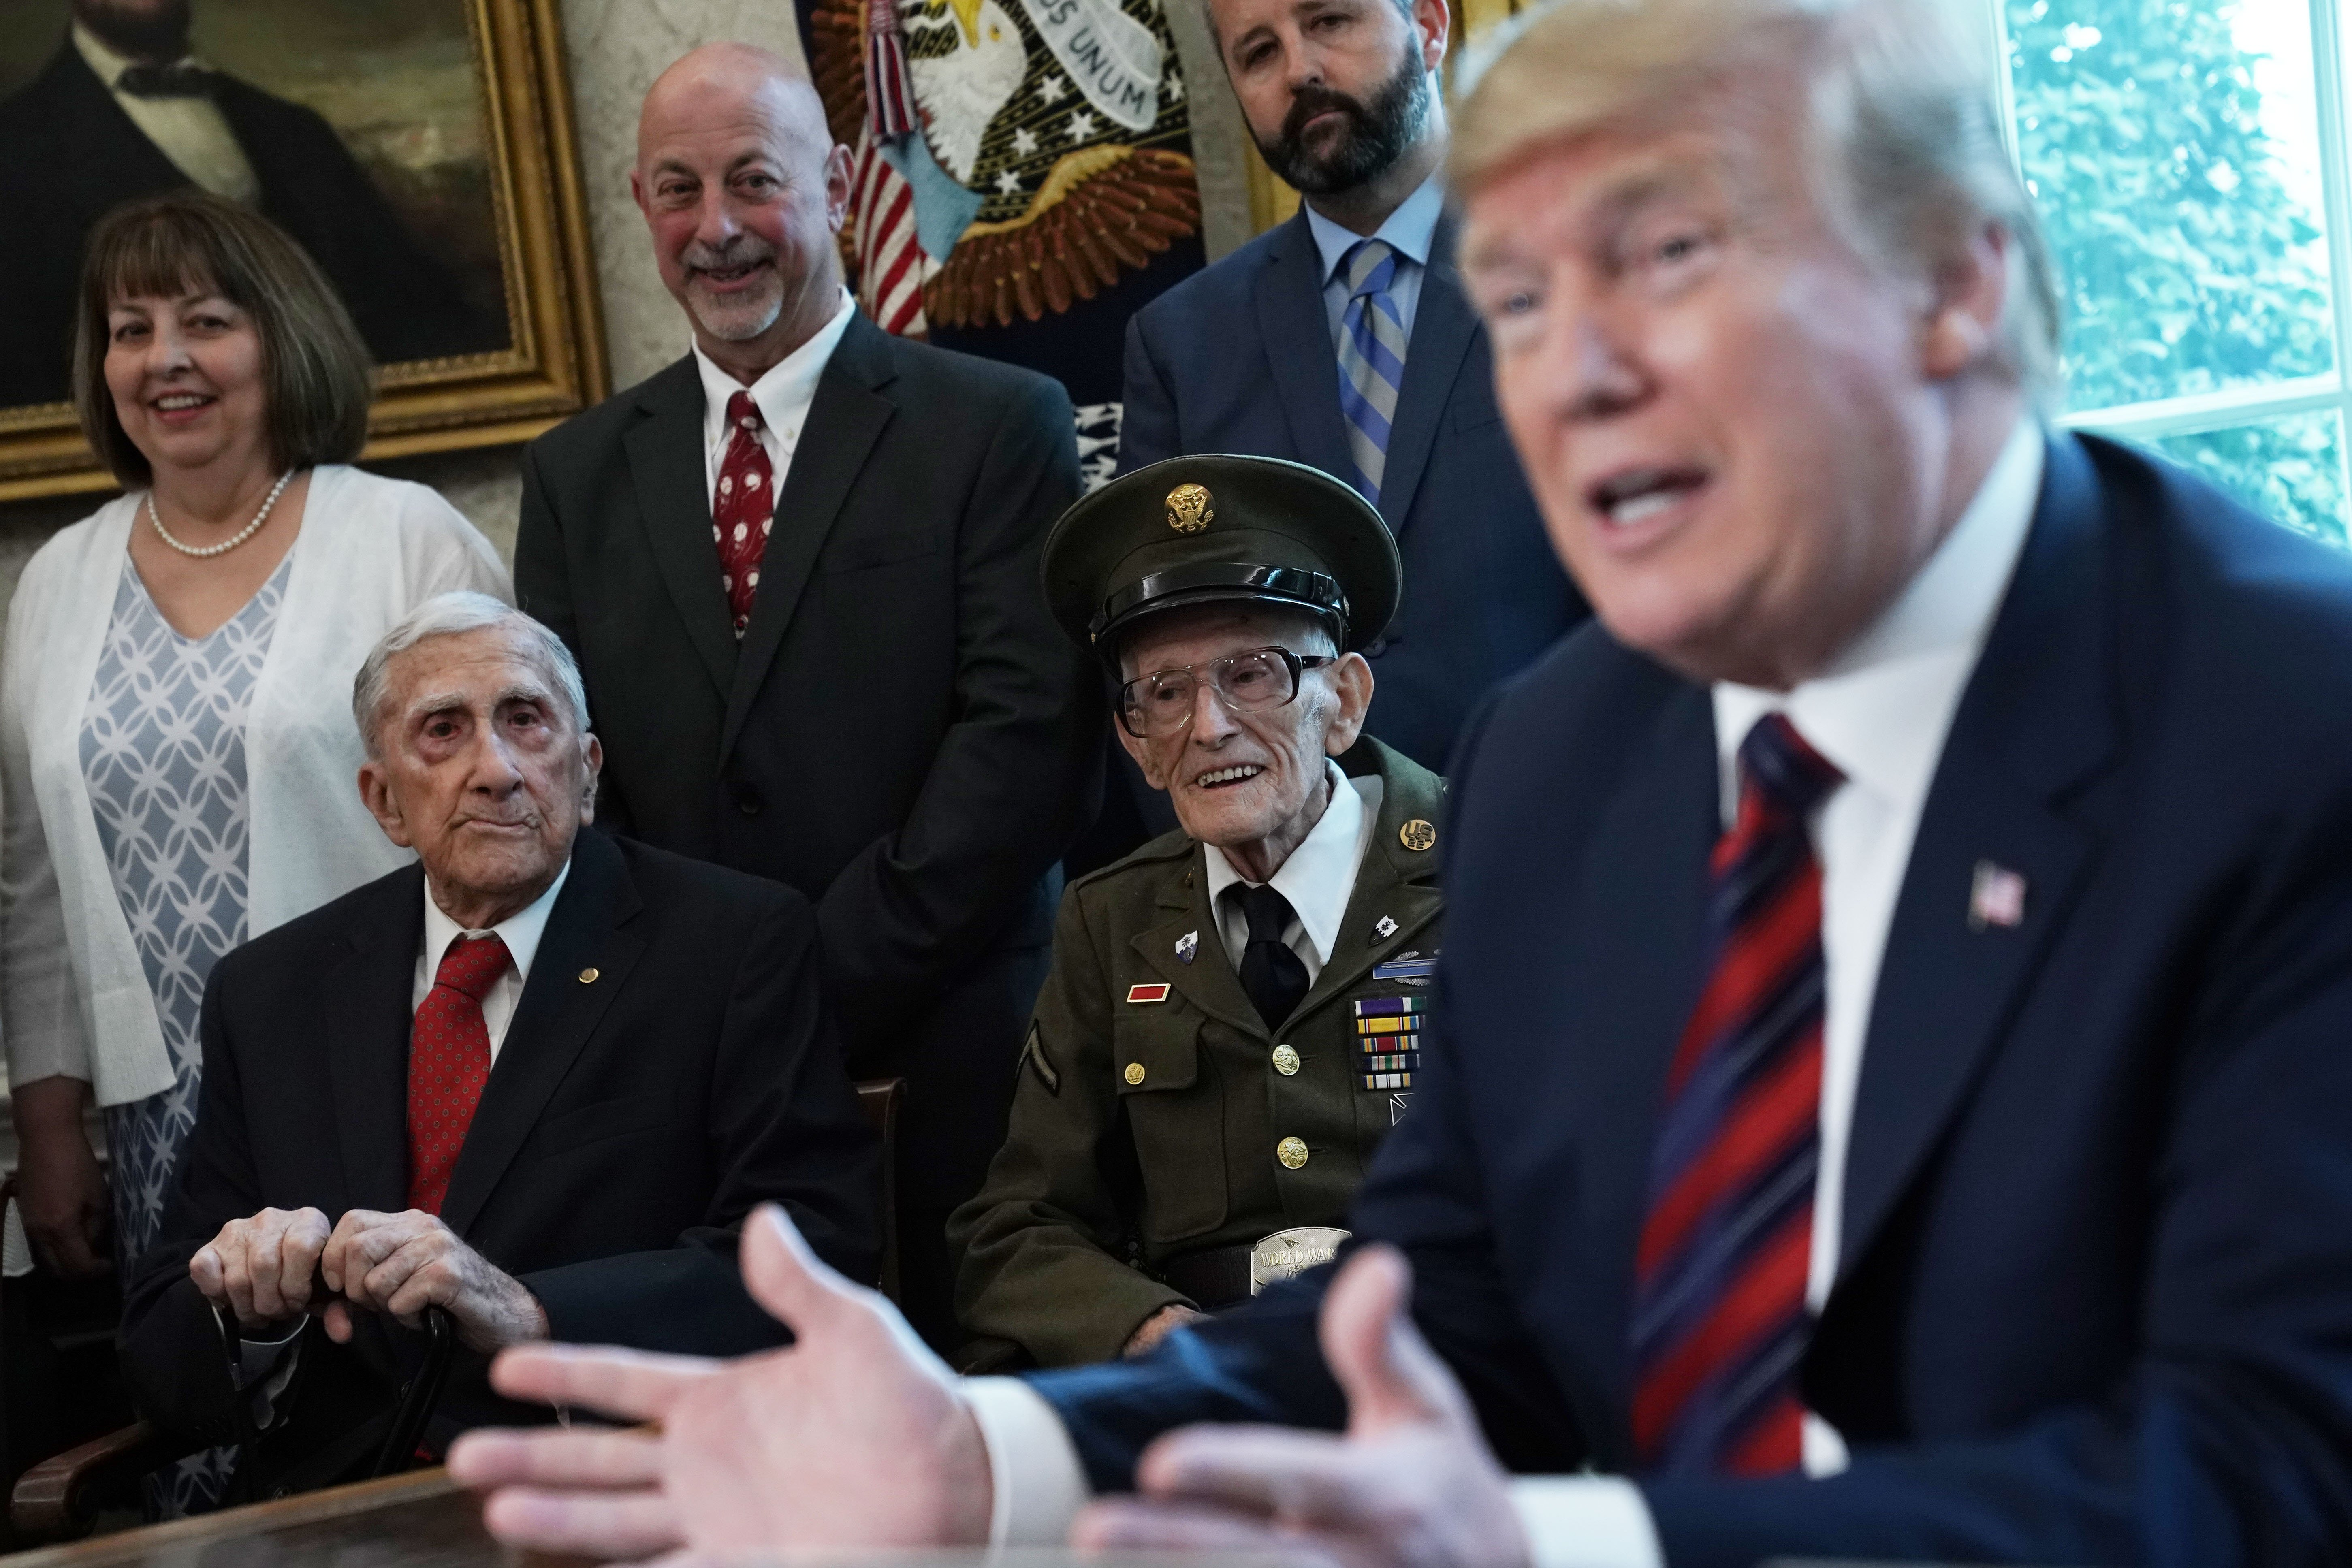 U.S. President Donald Trump speaks as he meets with World War II veterans including Paul Kriner (2nd L) and Floyd Wigfield (3rd L) in the Oval Office of the White House April 11, 2019 in Washington, DC. President Trump hosted the veterans and their families to honor their service during WWII. (Photo by Alex Wong/Getty Images)